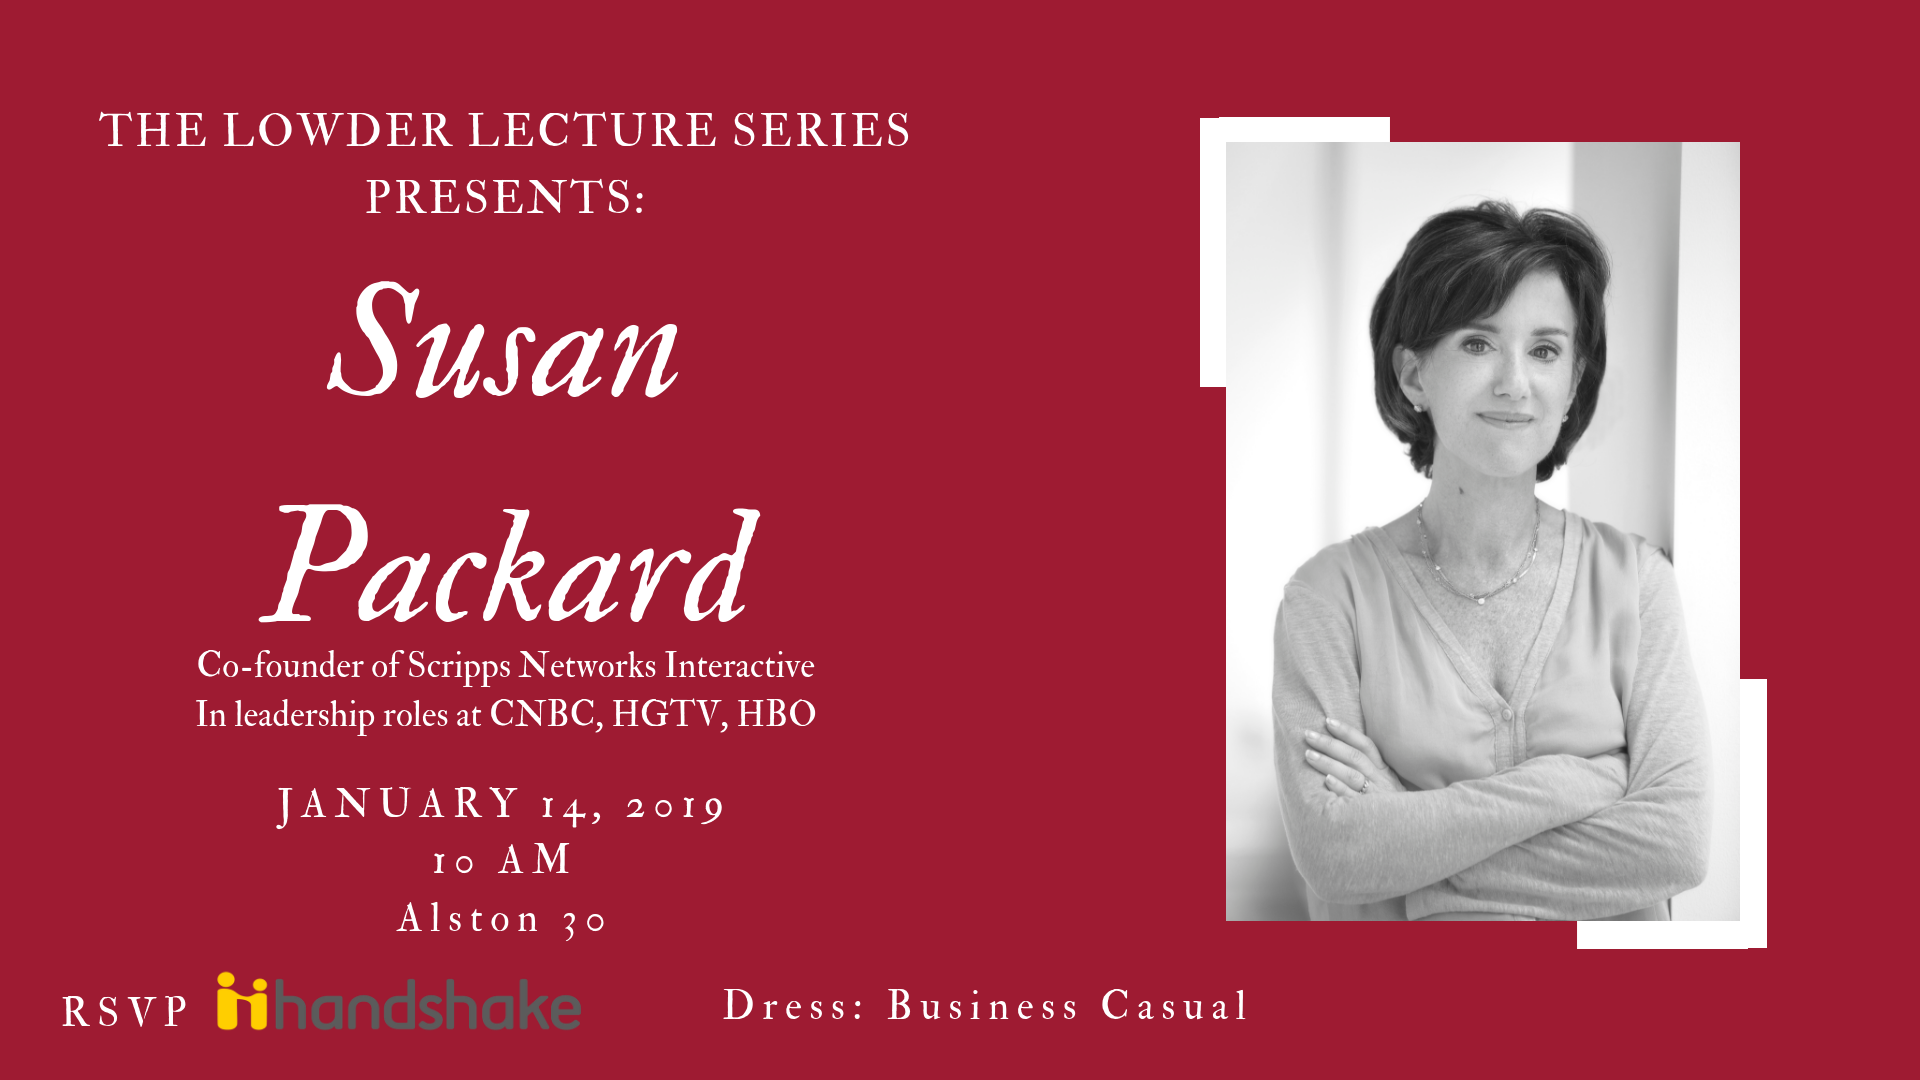 The Lowder Lecture Series Presents Susan Packard: cofounder of Scripps Networks Interactive on January 14, 2019 in Alston 30